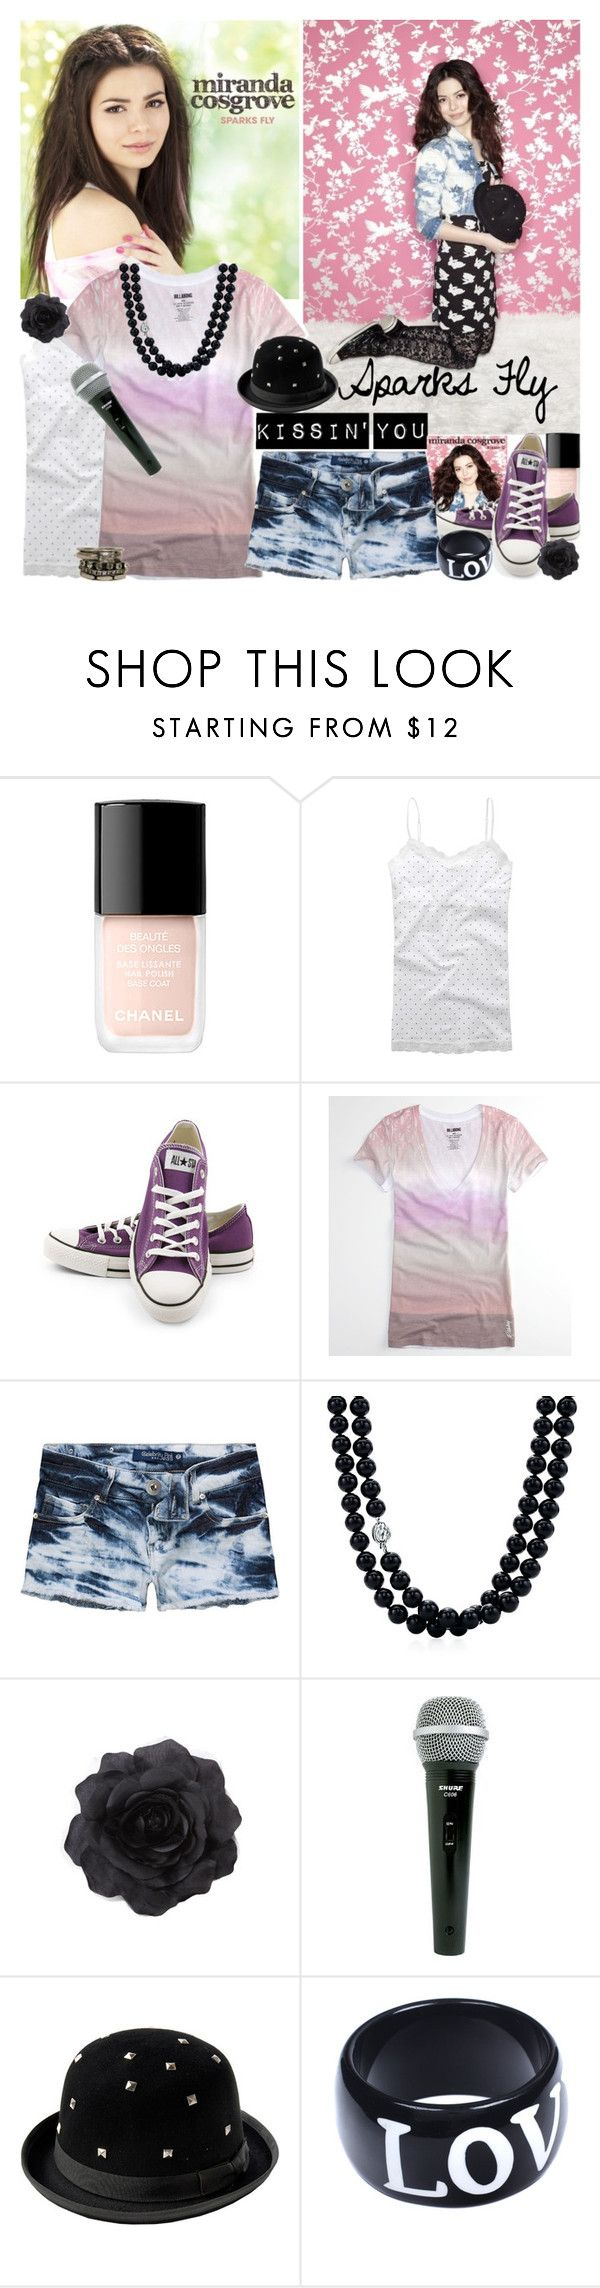 """""""When i'm Kissin' You..?"""" by ashleyandcody ❤ liked on Polyvore featuring Chanel, Aéropostale, Converse, Billabong, Celebrity Pink, Tiffany & Co., Long Tall Sally, AND 1, American Retro and ASOS"""